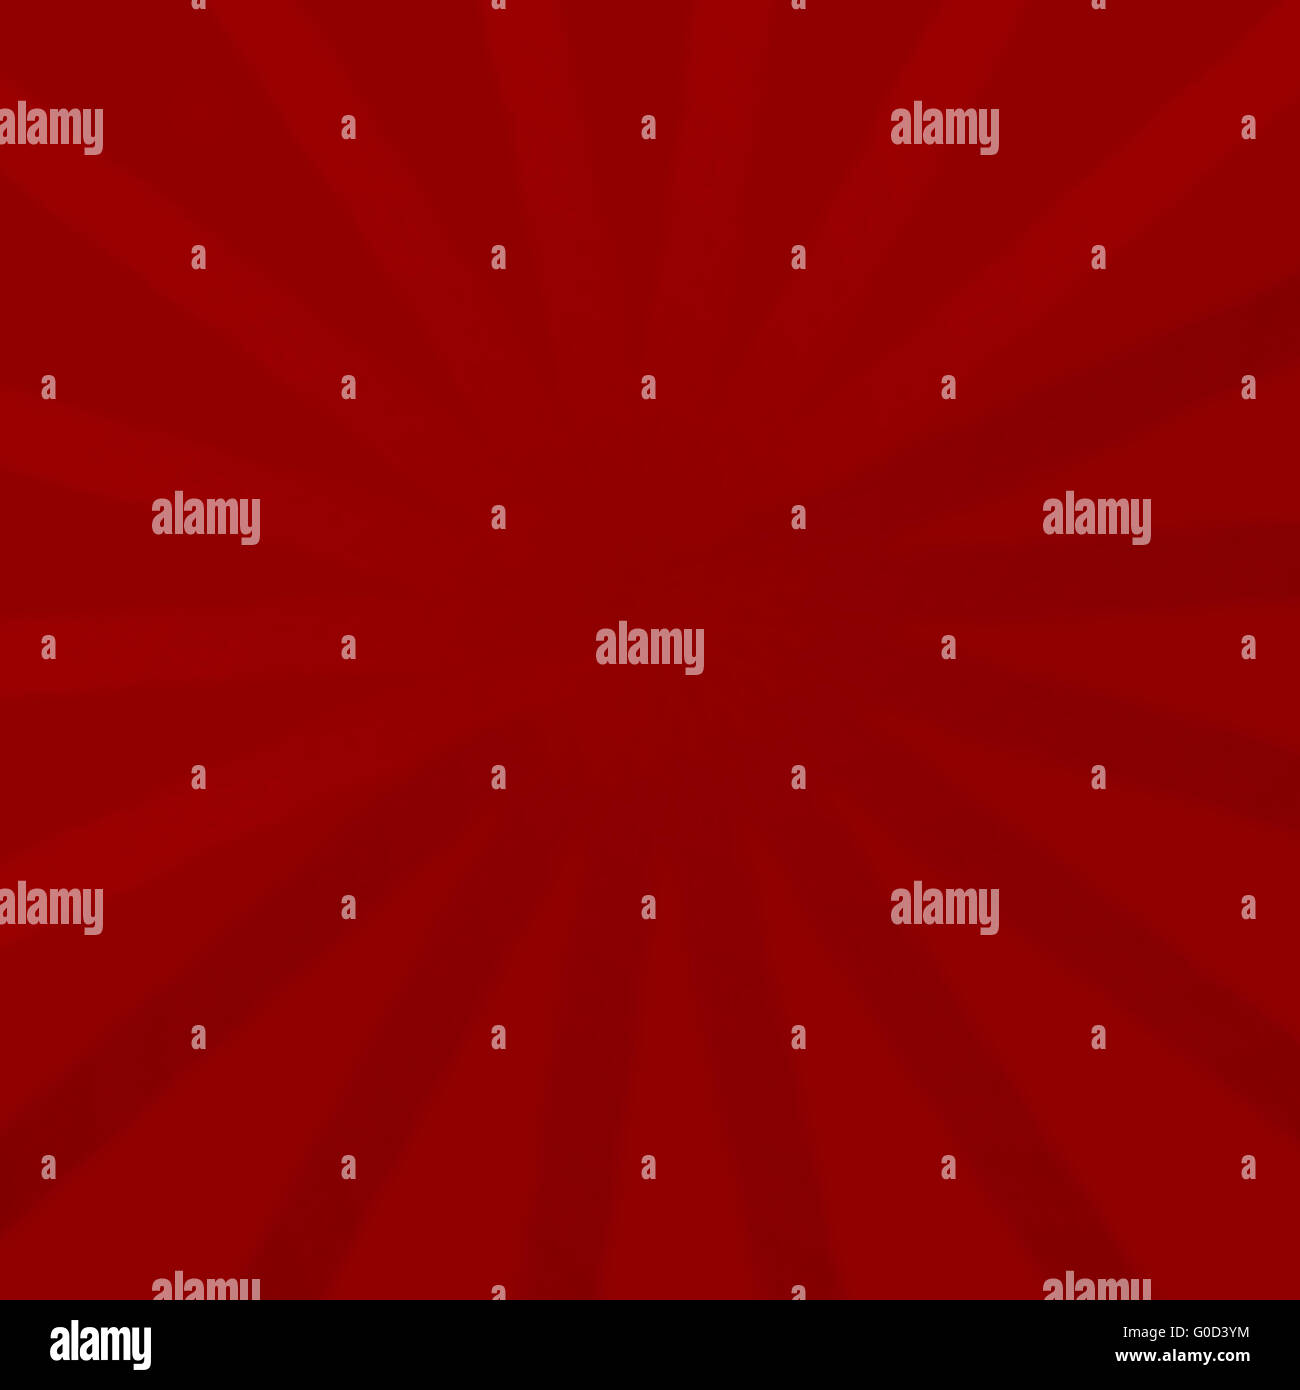 Background in red - Stock Image